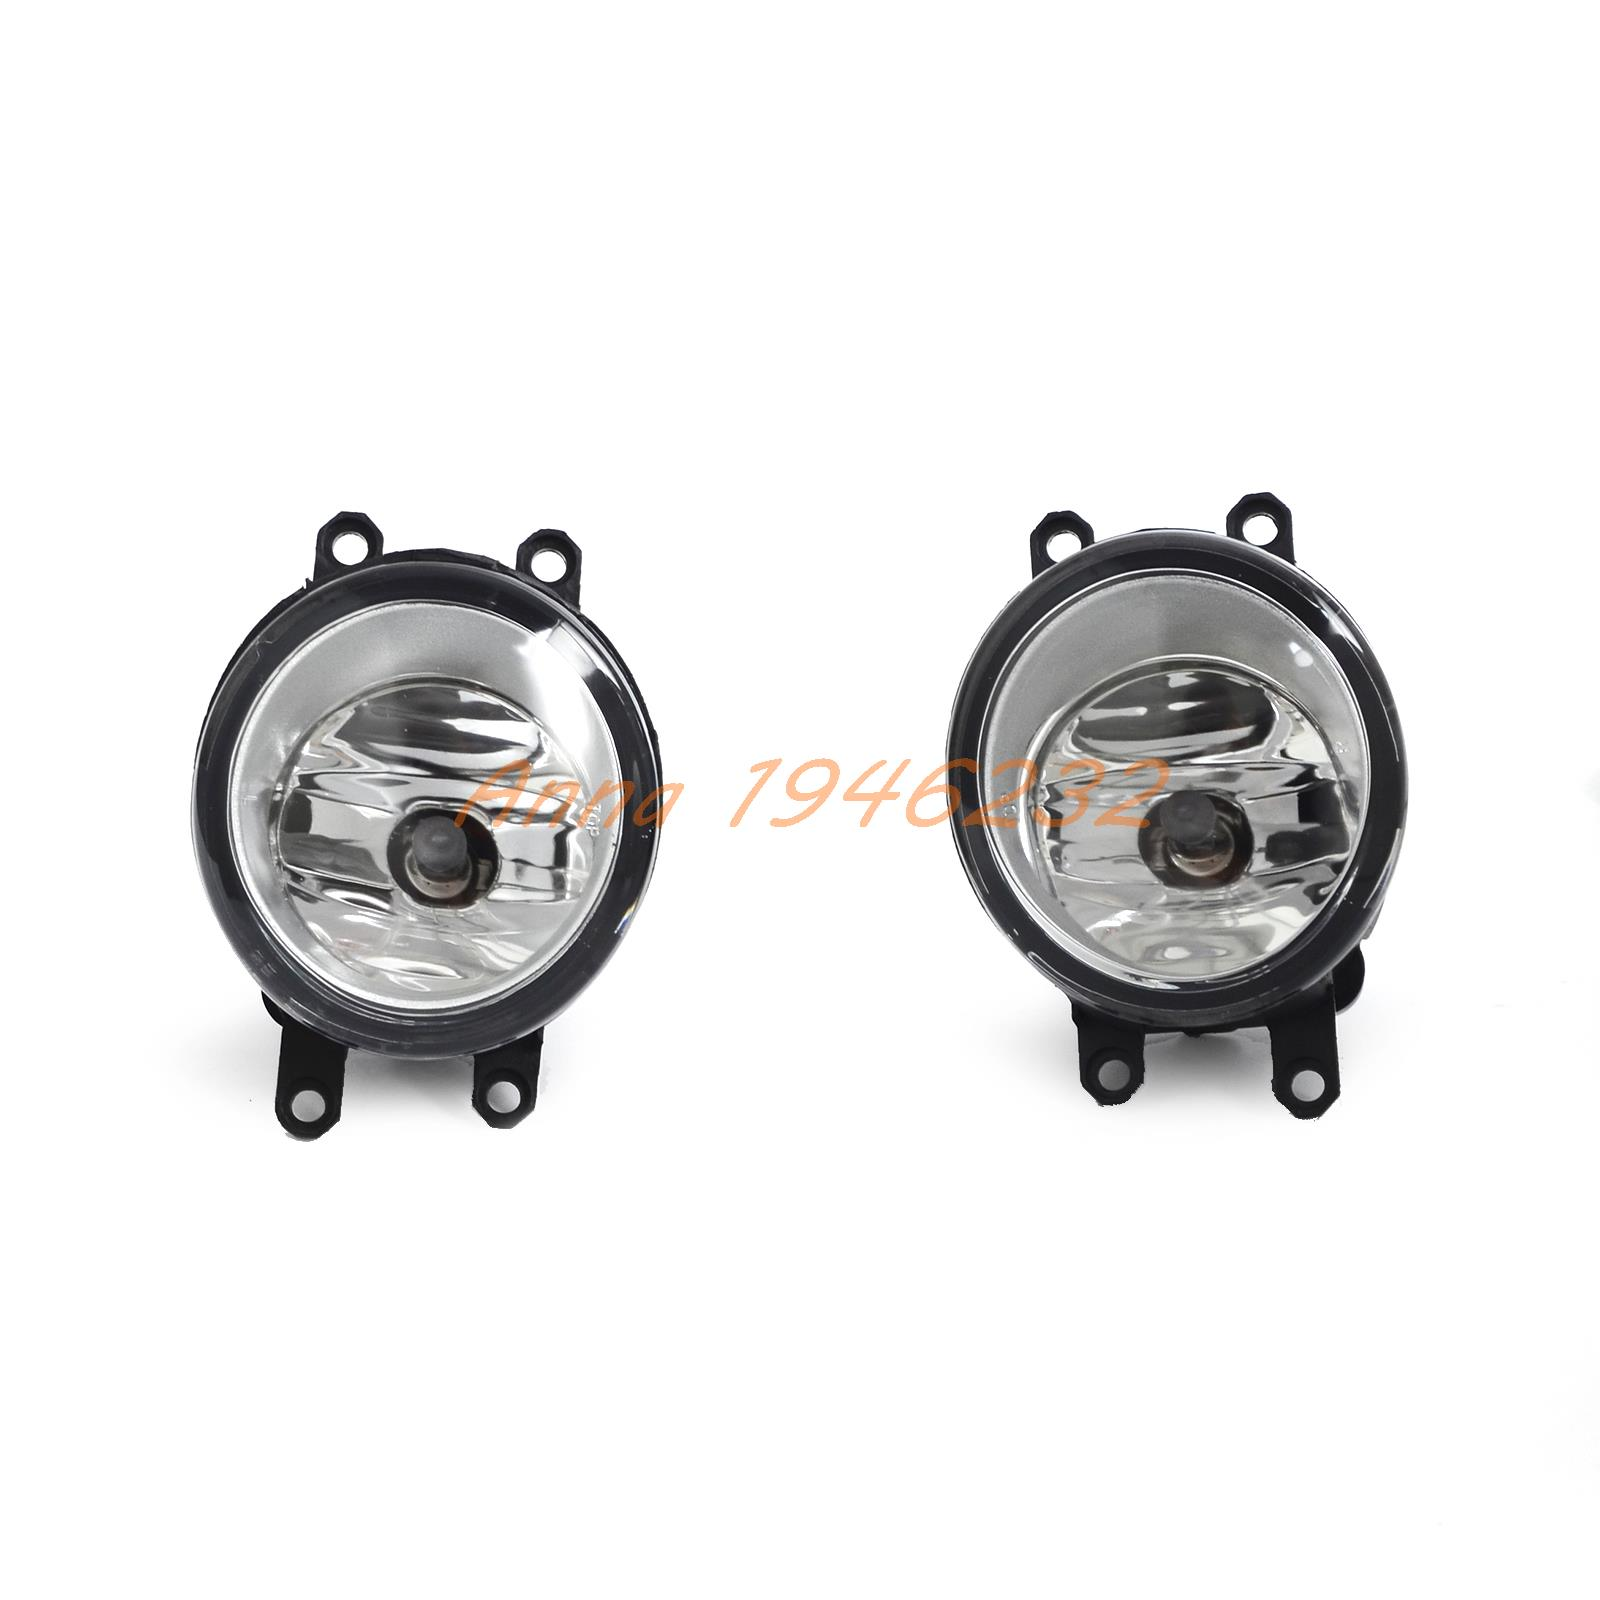 NICECNC Fog Light Lamps with H11 Bulbs For Toyota Avalon Corolla Camry Highlander Hybrid Matrix Prius Sienna Yaris Solara RAV4 уилл олдхэм bonnie prince billy now here s my plan